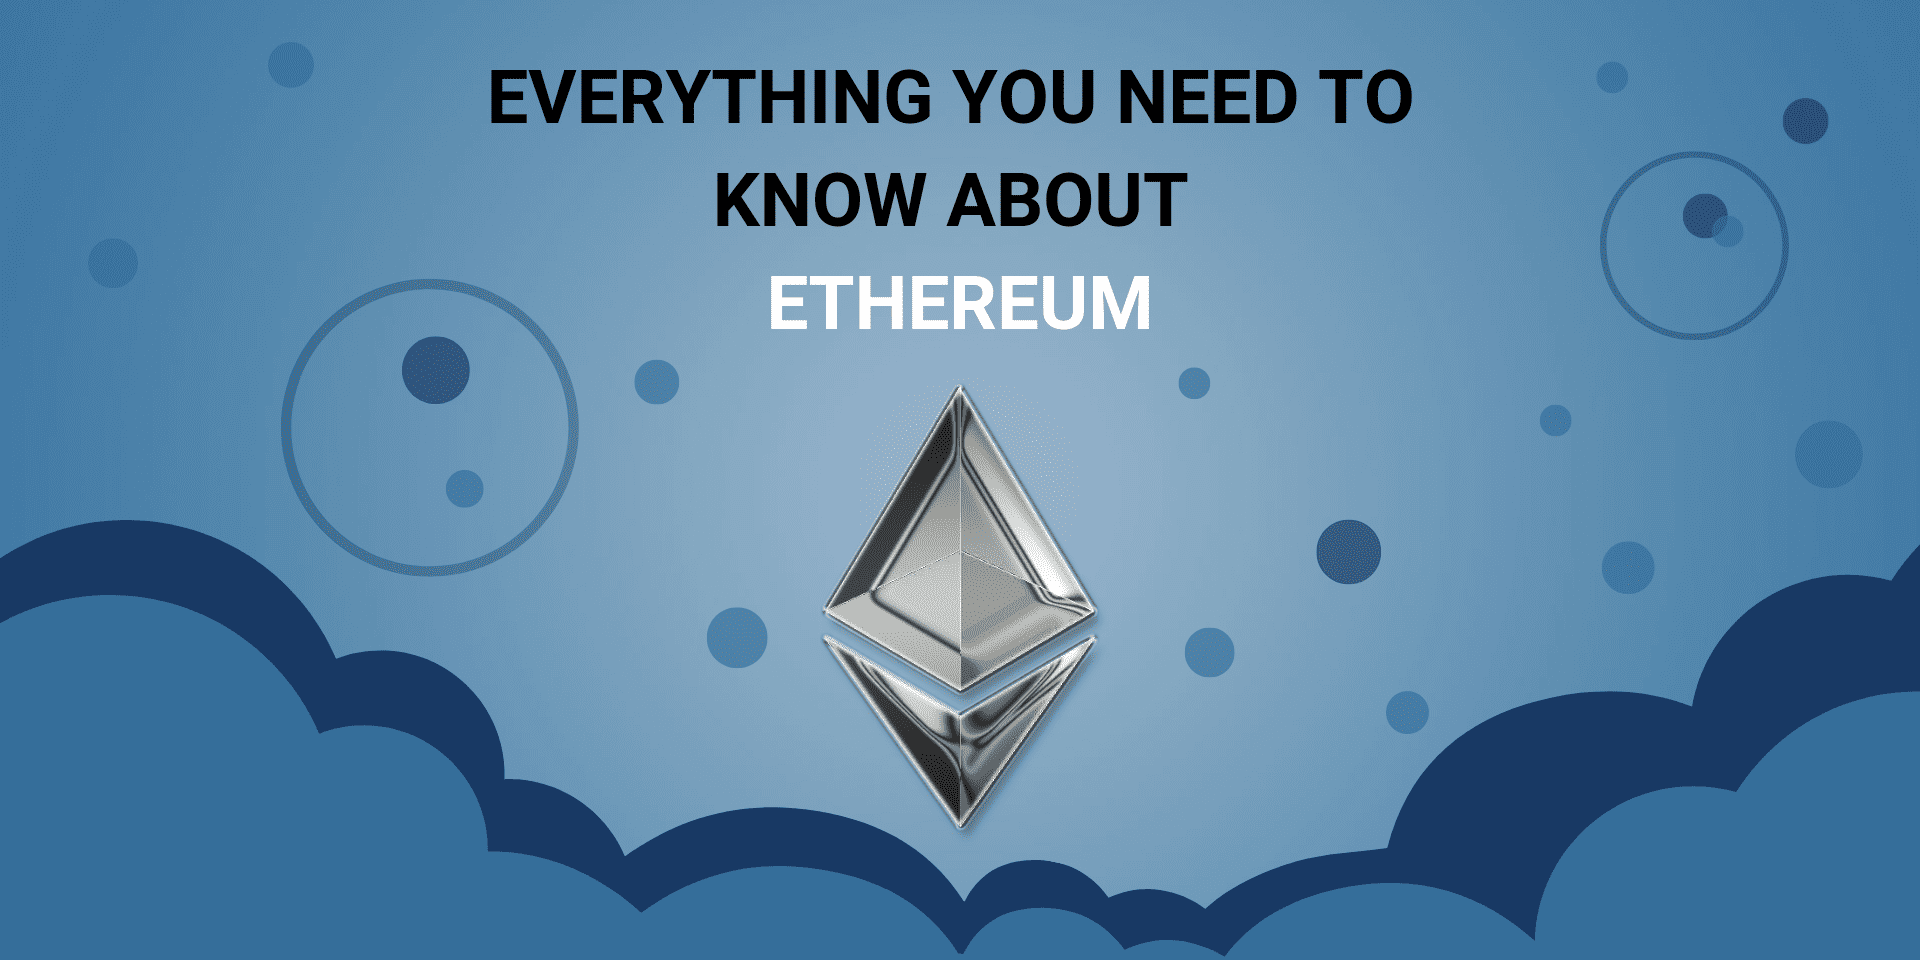 ethereum explained simply